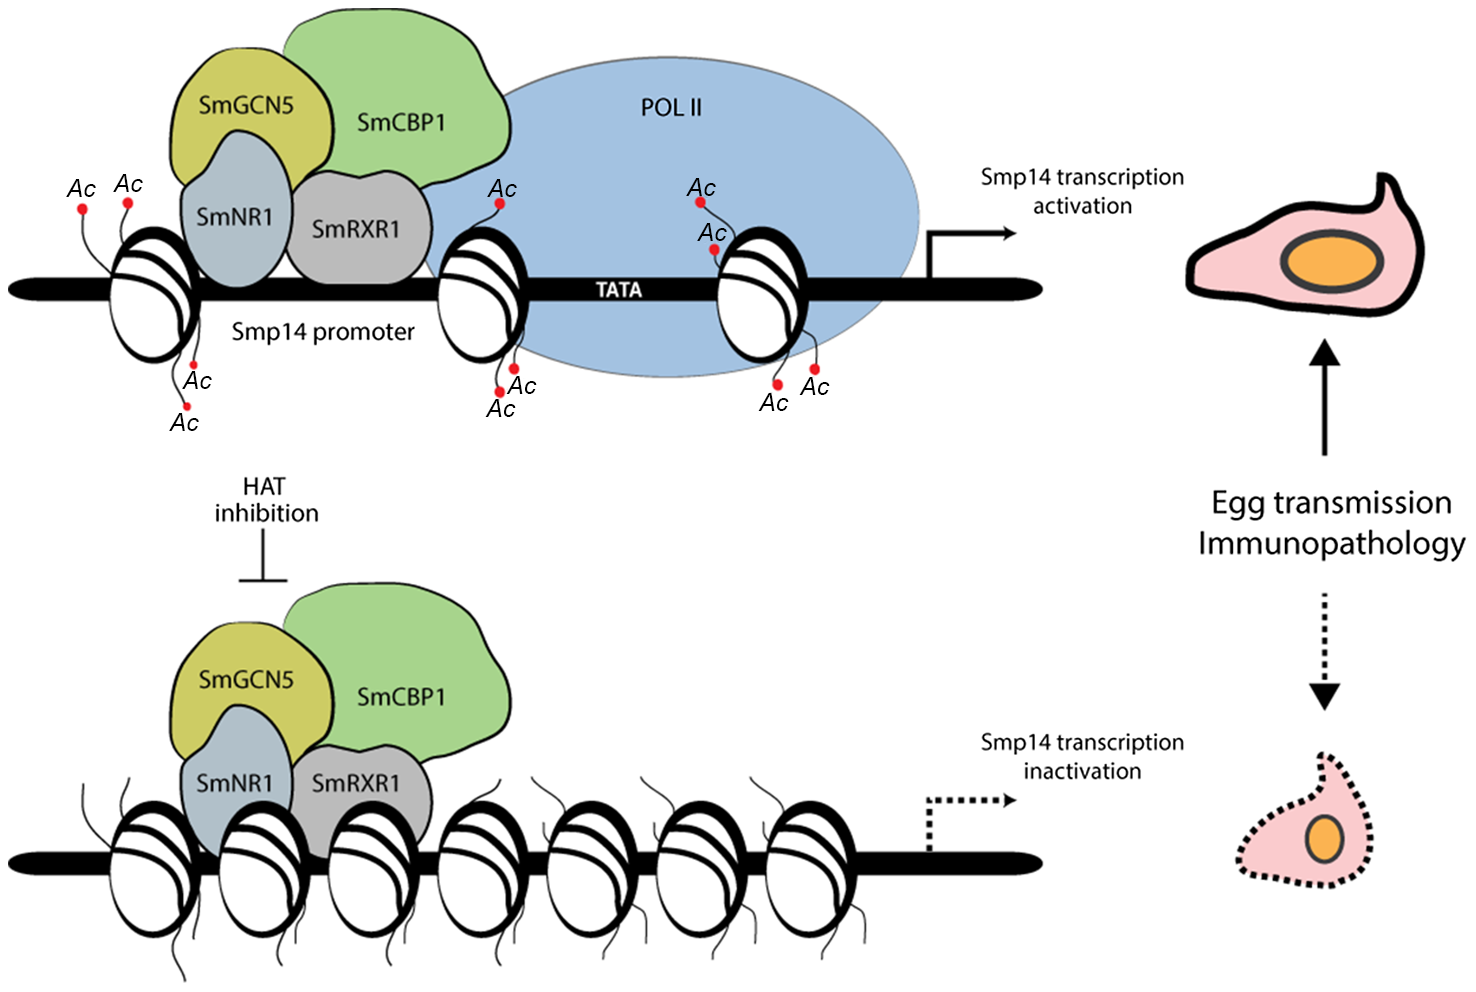 Proposed model of the acetylation-dependent activation of <i>Smp14</i> transcription and eggshell formation.